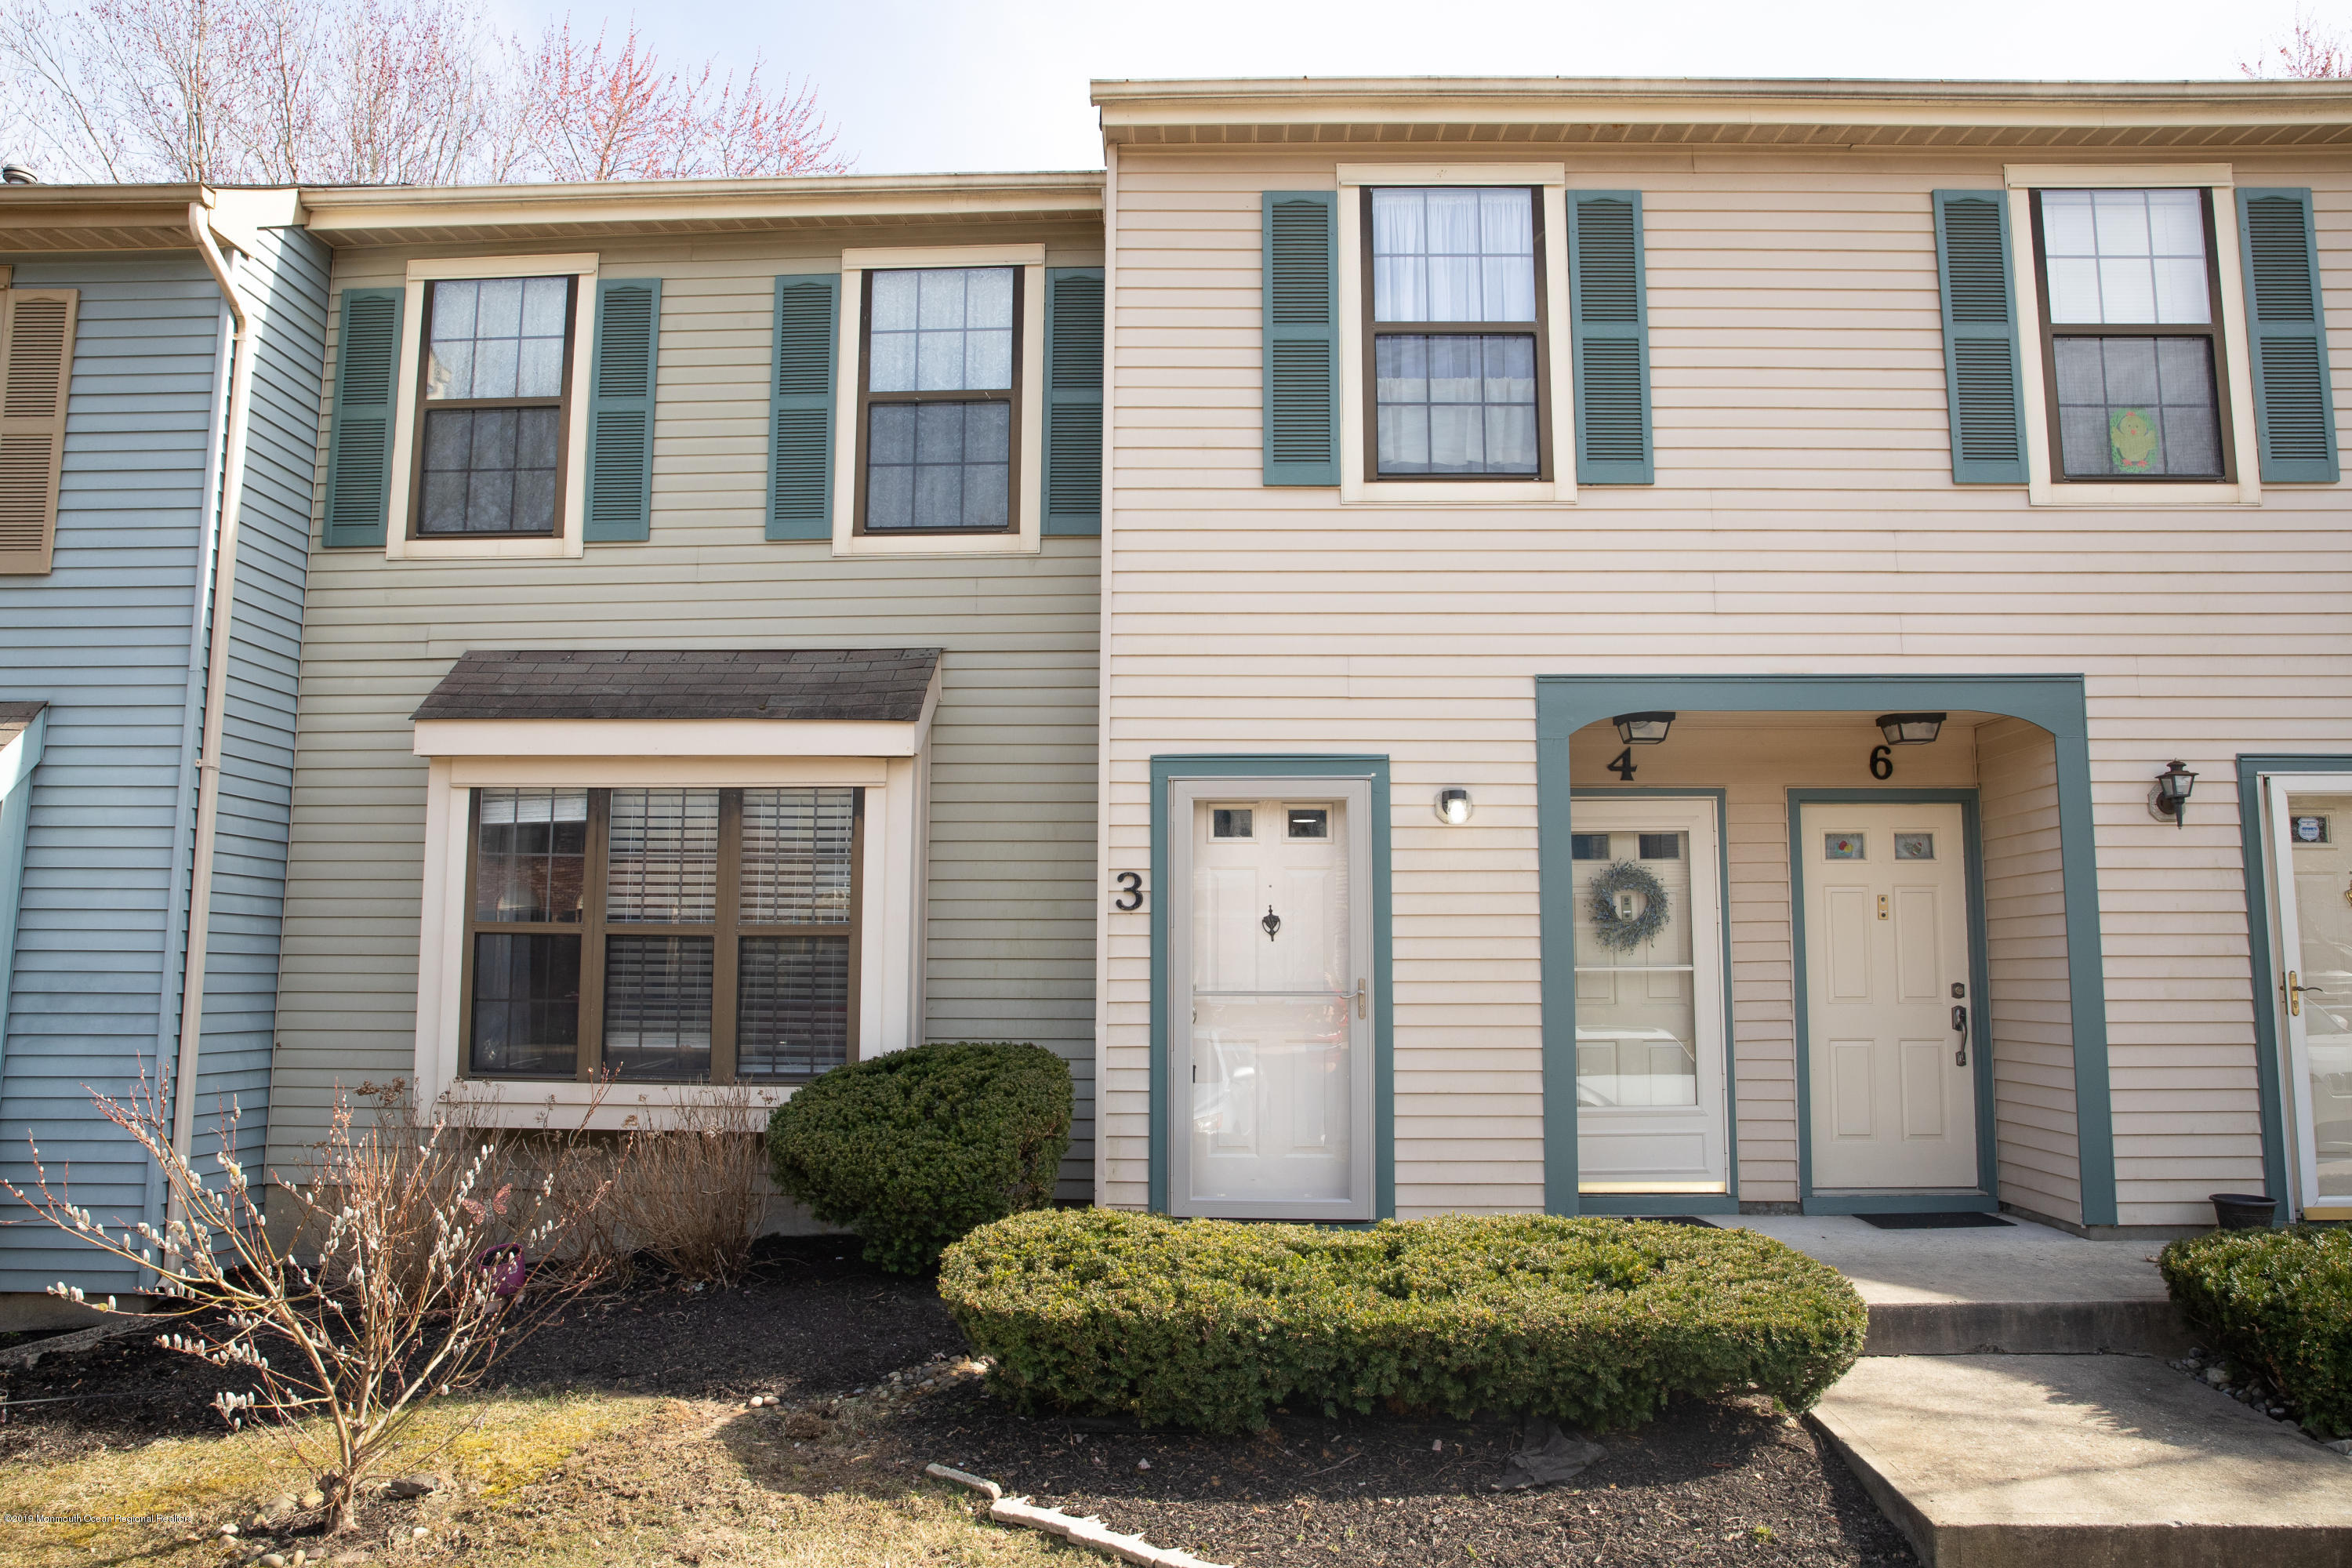 4 Eastwick Court Freehold NJ 07728